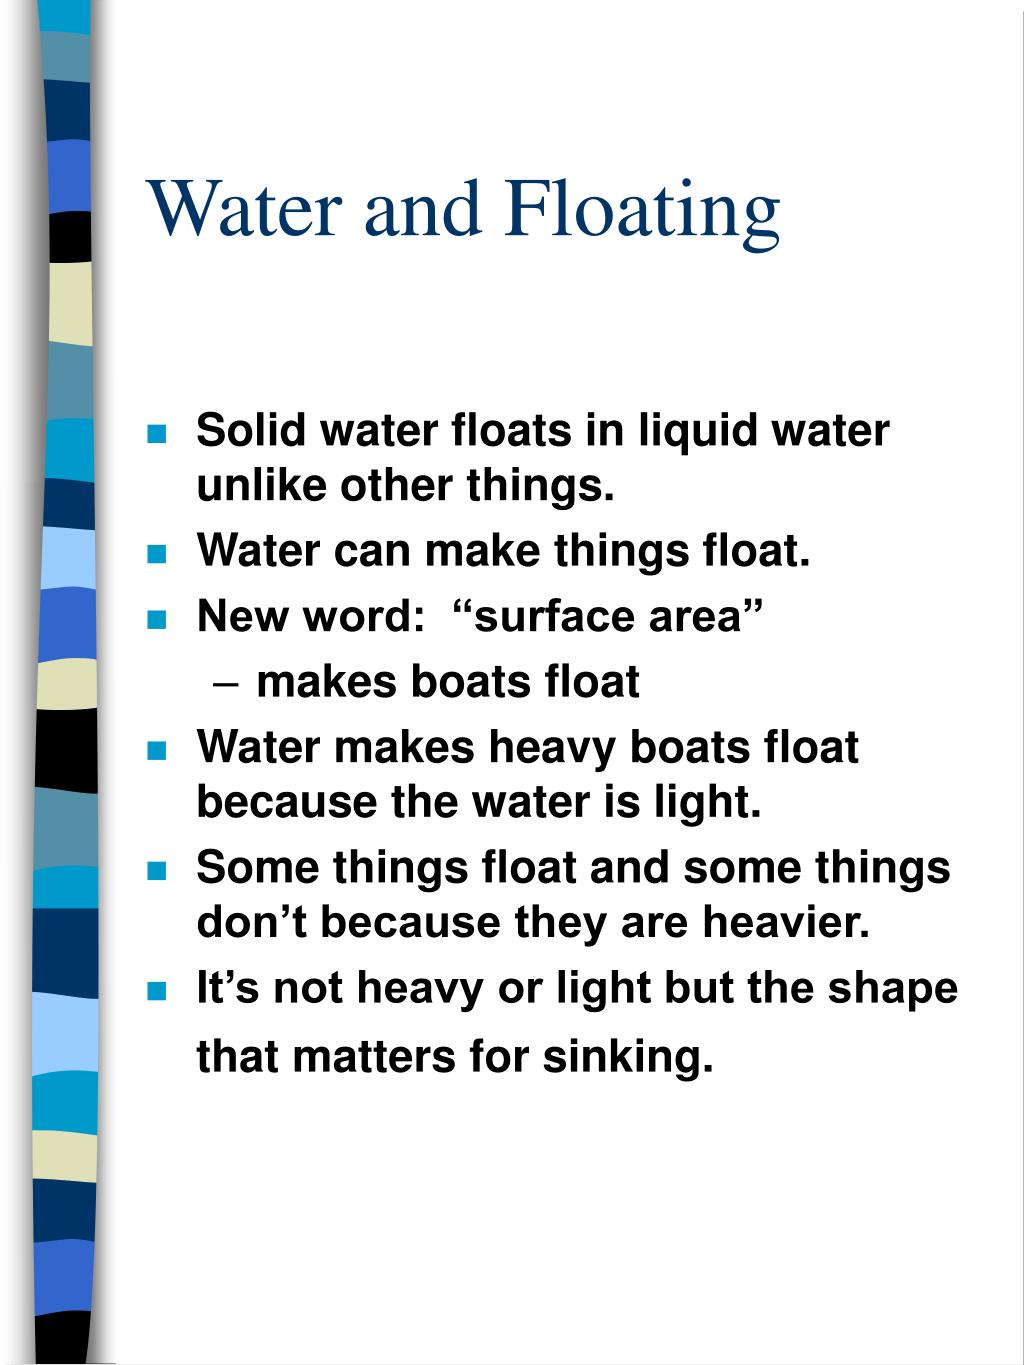 Water and Floating